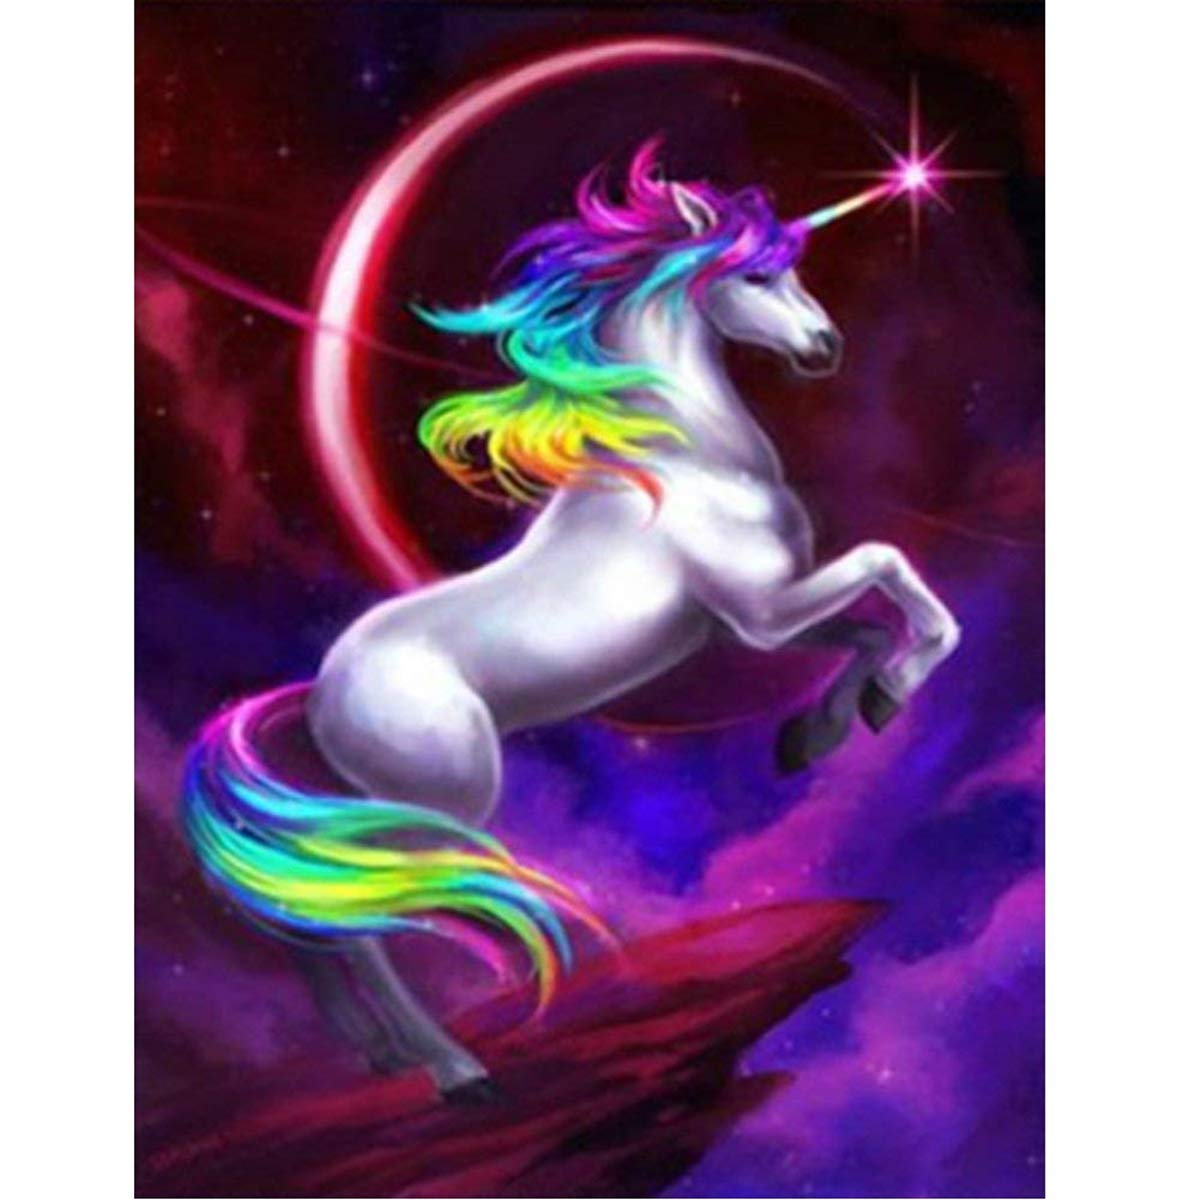 DIY 5D Diamond Painting by Number Kit, Full Drill Flying Unicorn Animal Embroidery Cross Stitch Rhinestone Pictures Arts Craft Home Wall Decor 11.8x15.8 inch AIRDEA